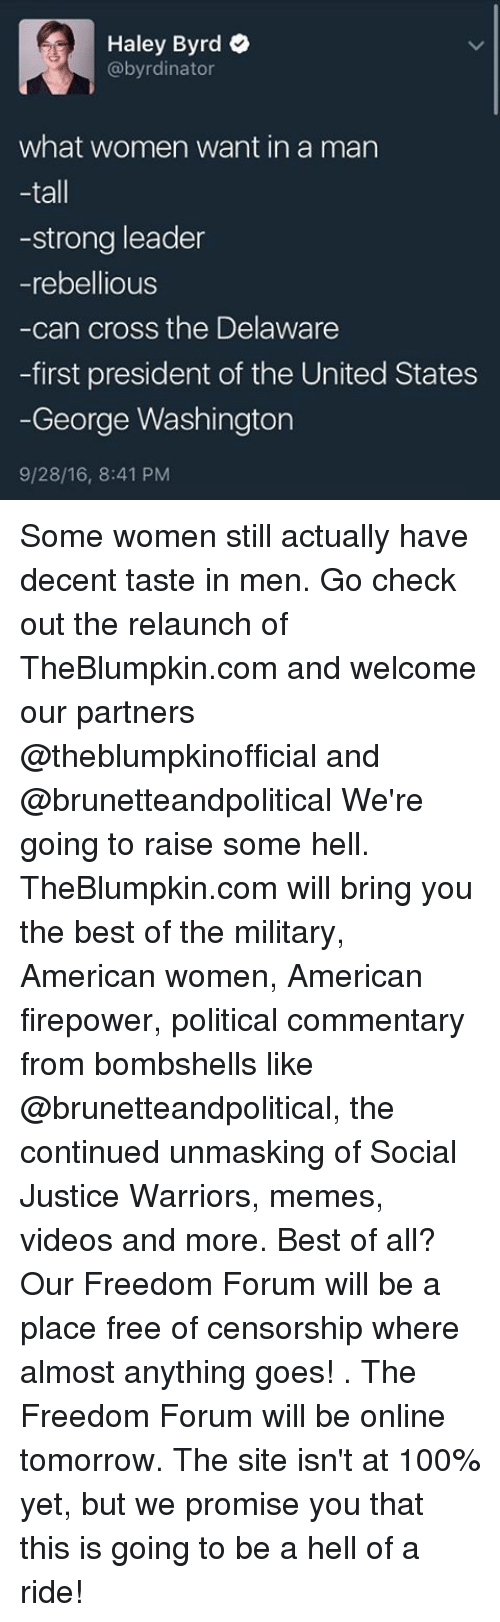 Freedomed: Haley Byrd  @byrdinator  what women want in a man  tall  -strong leader  -rebellious  -can cross the Delaware  -first president of the United States  George Washington  9/28/16, 8:41 PM Some women still actually have decent taste in men. Go check out the relaunch of TheBlumpkin.com and welcome our partners @theblumpkinofficial and @brunetteandpolitical We're going to raise some hell. TheBlumpkin.com will bring you the best of the military, American women, American firepower, political commentary from bombshells like @brunetteandpolitical, the continued unmasking of Social Justice Warriors, memes, videos and more. Best of all? Our Freedom Forum will be a place free of censorship where almost anything goes! . The Freedom Forum will be online tomorrow. The site isn't at 100% yet, but we promise you that this is going to be a hell of a ride!